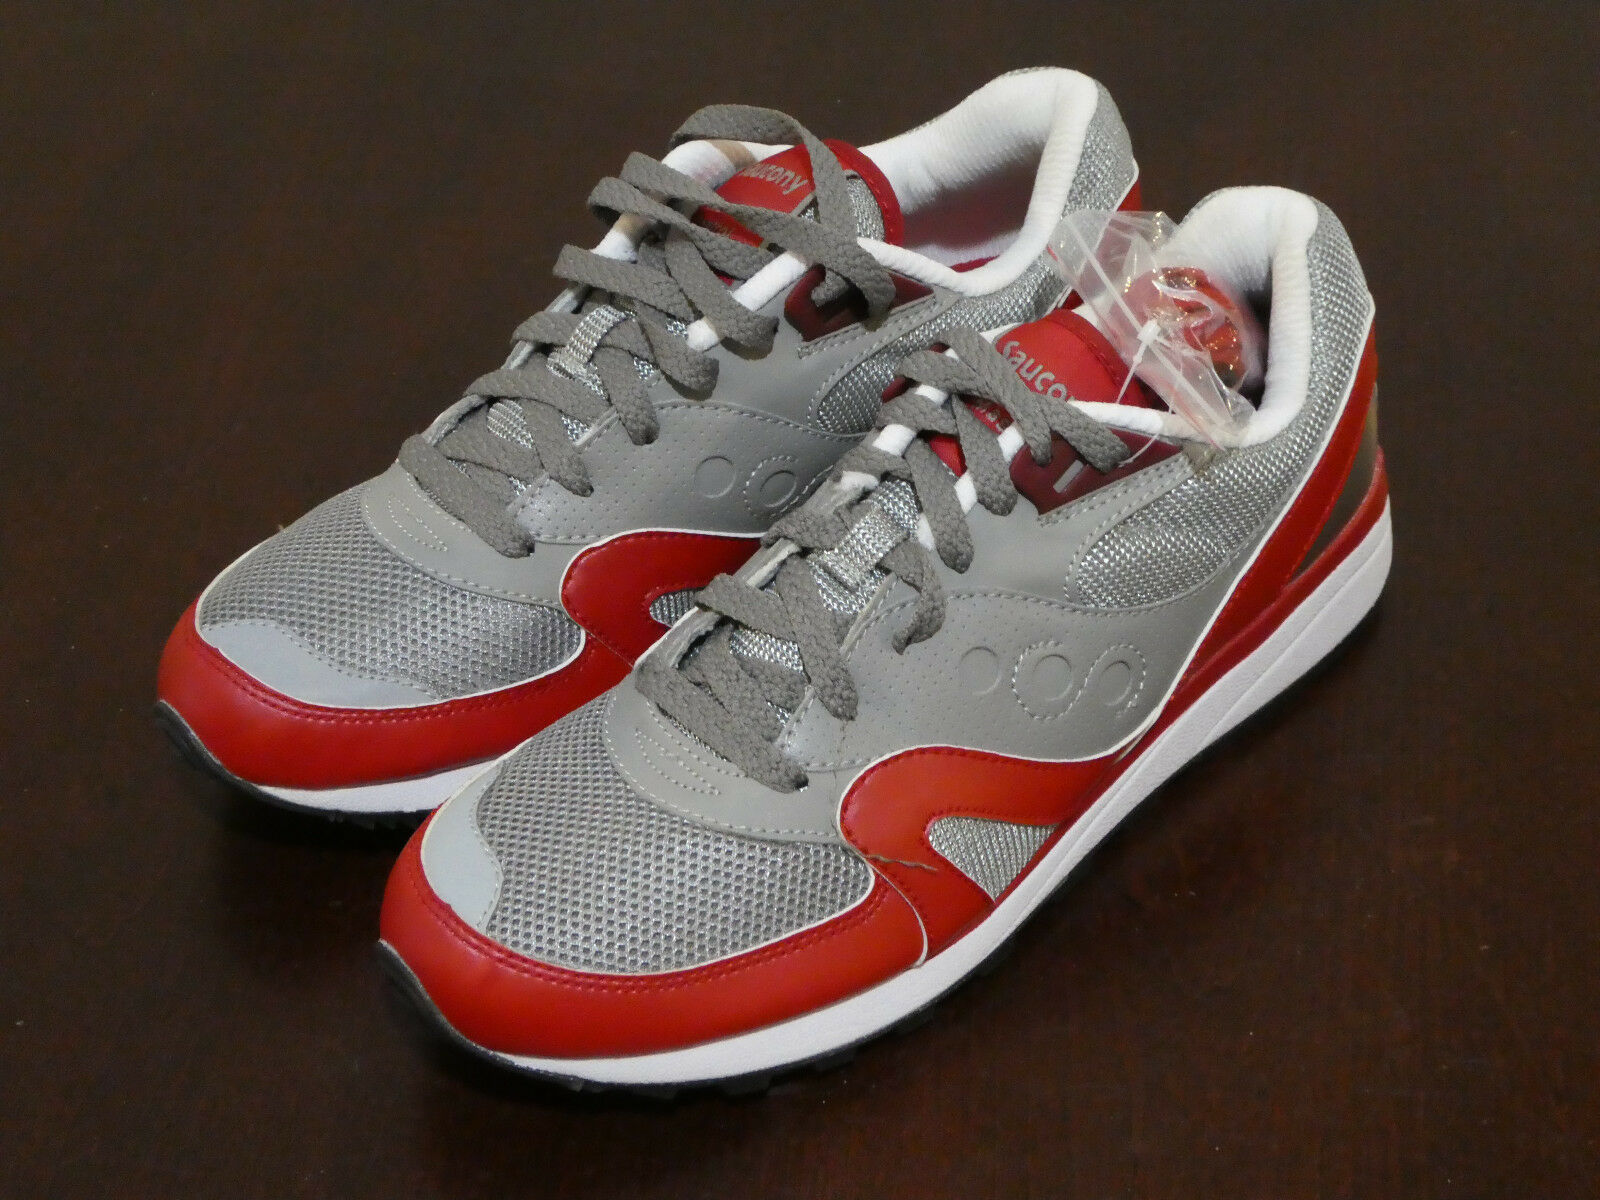 Saucony Master Control shoes mens new sneakers 70076-5 grey red